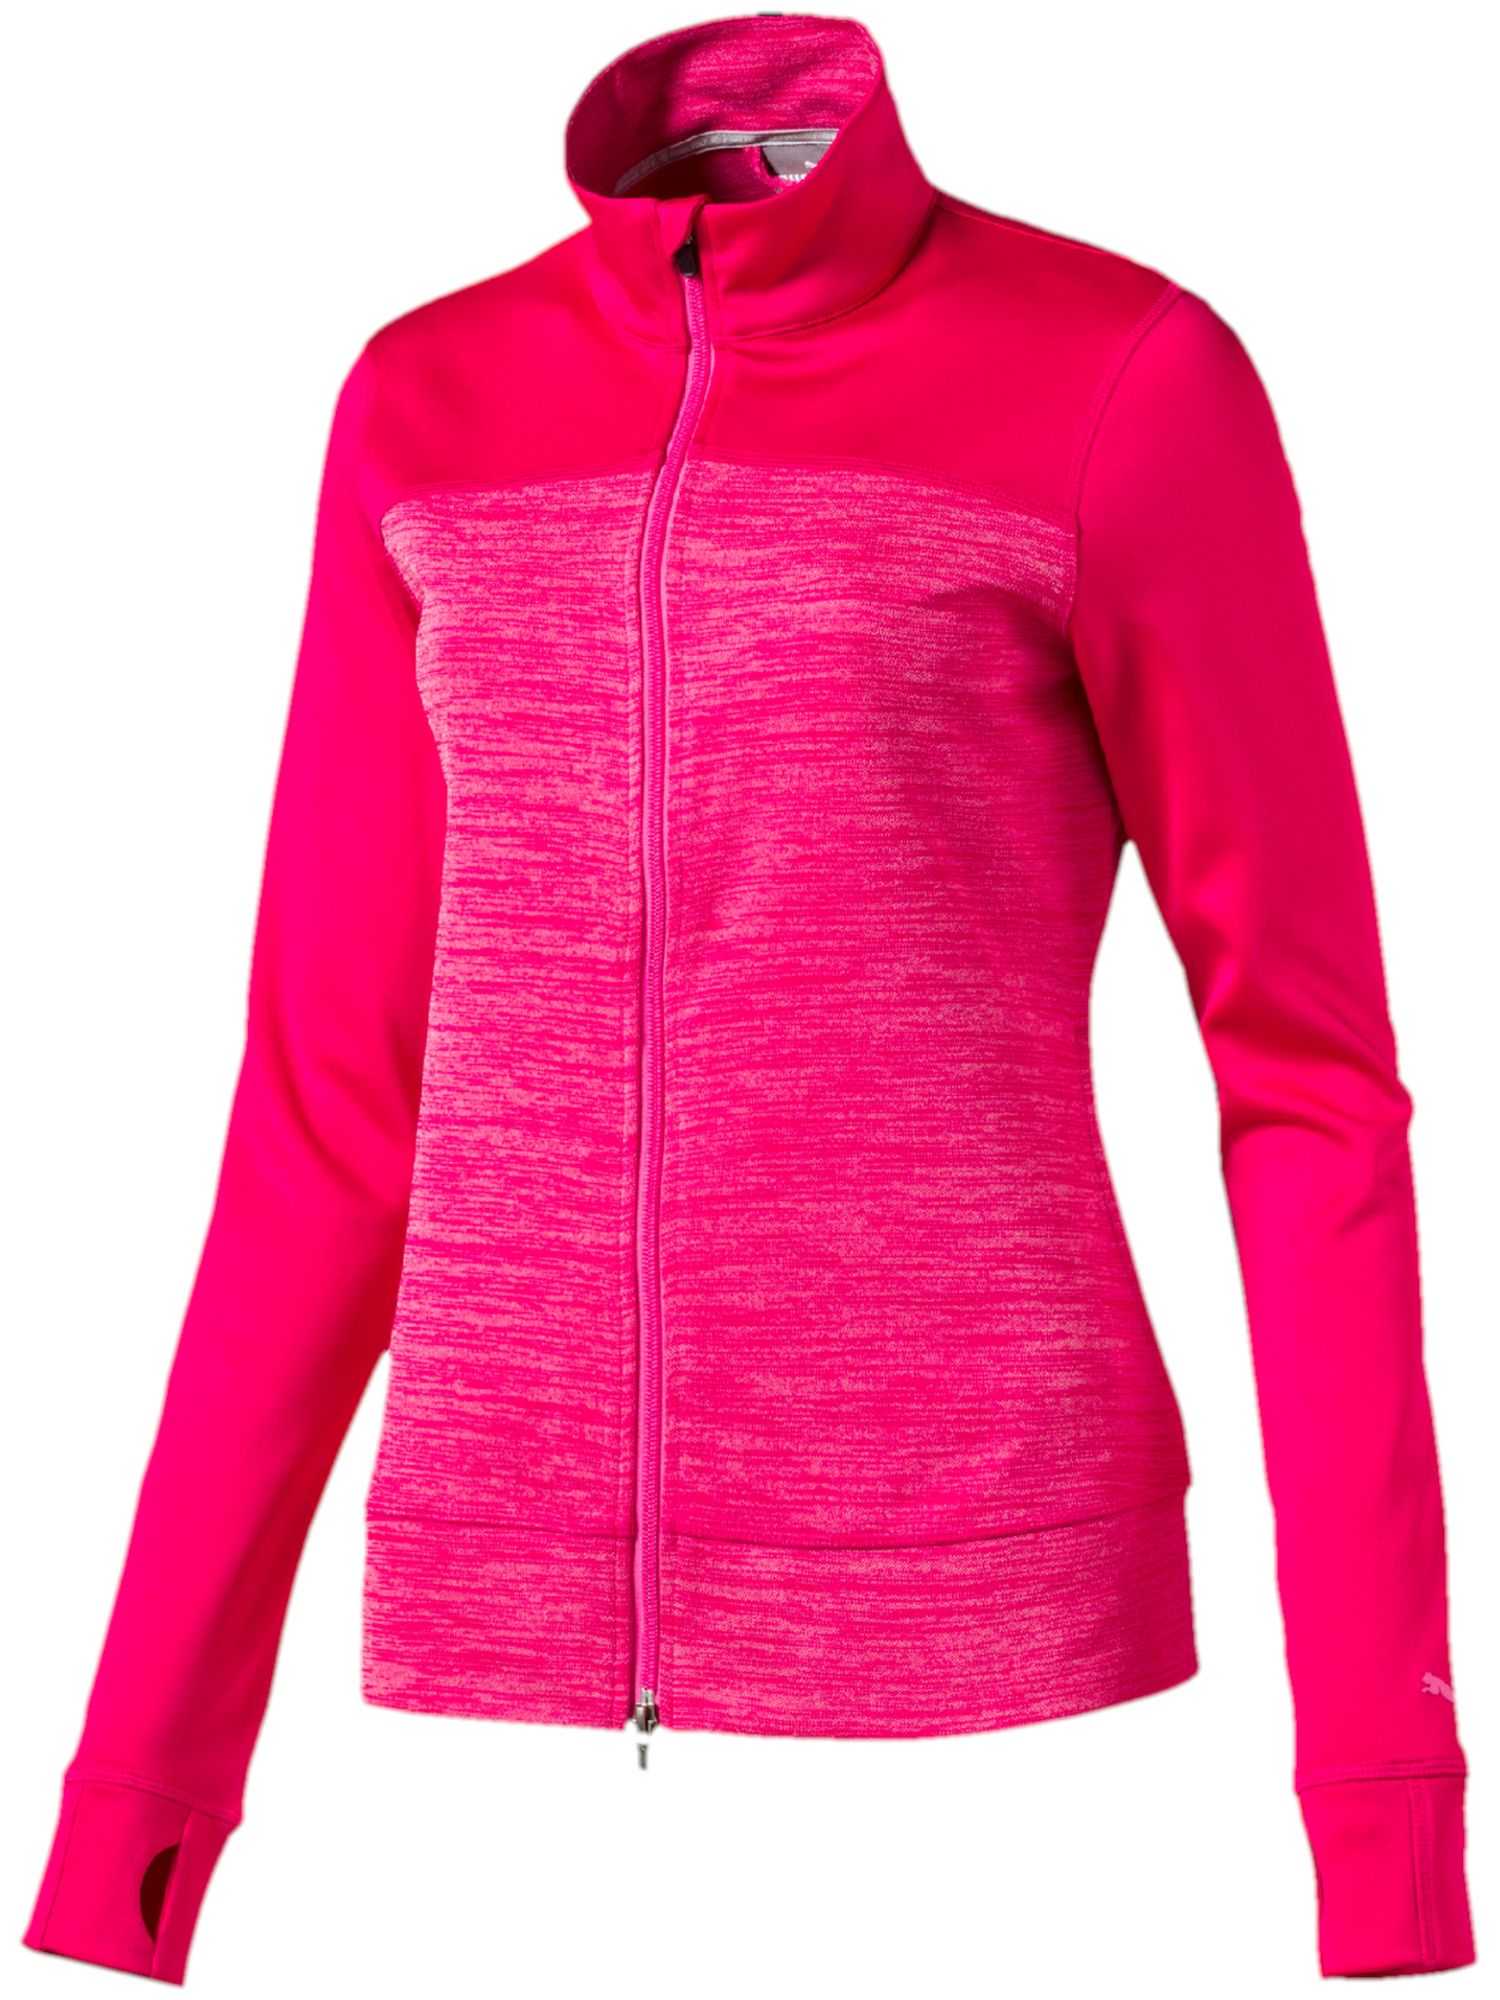 Puma Colorblock Full Zip Jacket, Pink